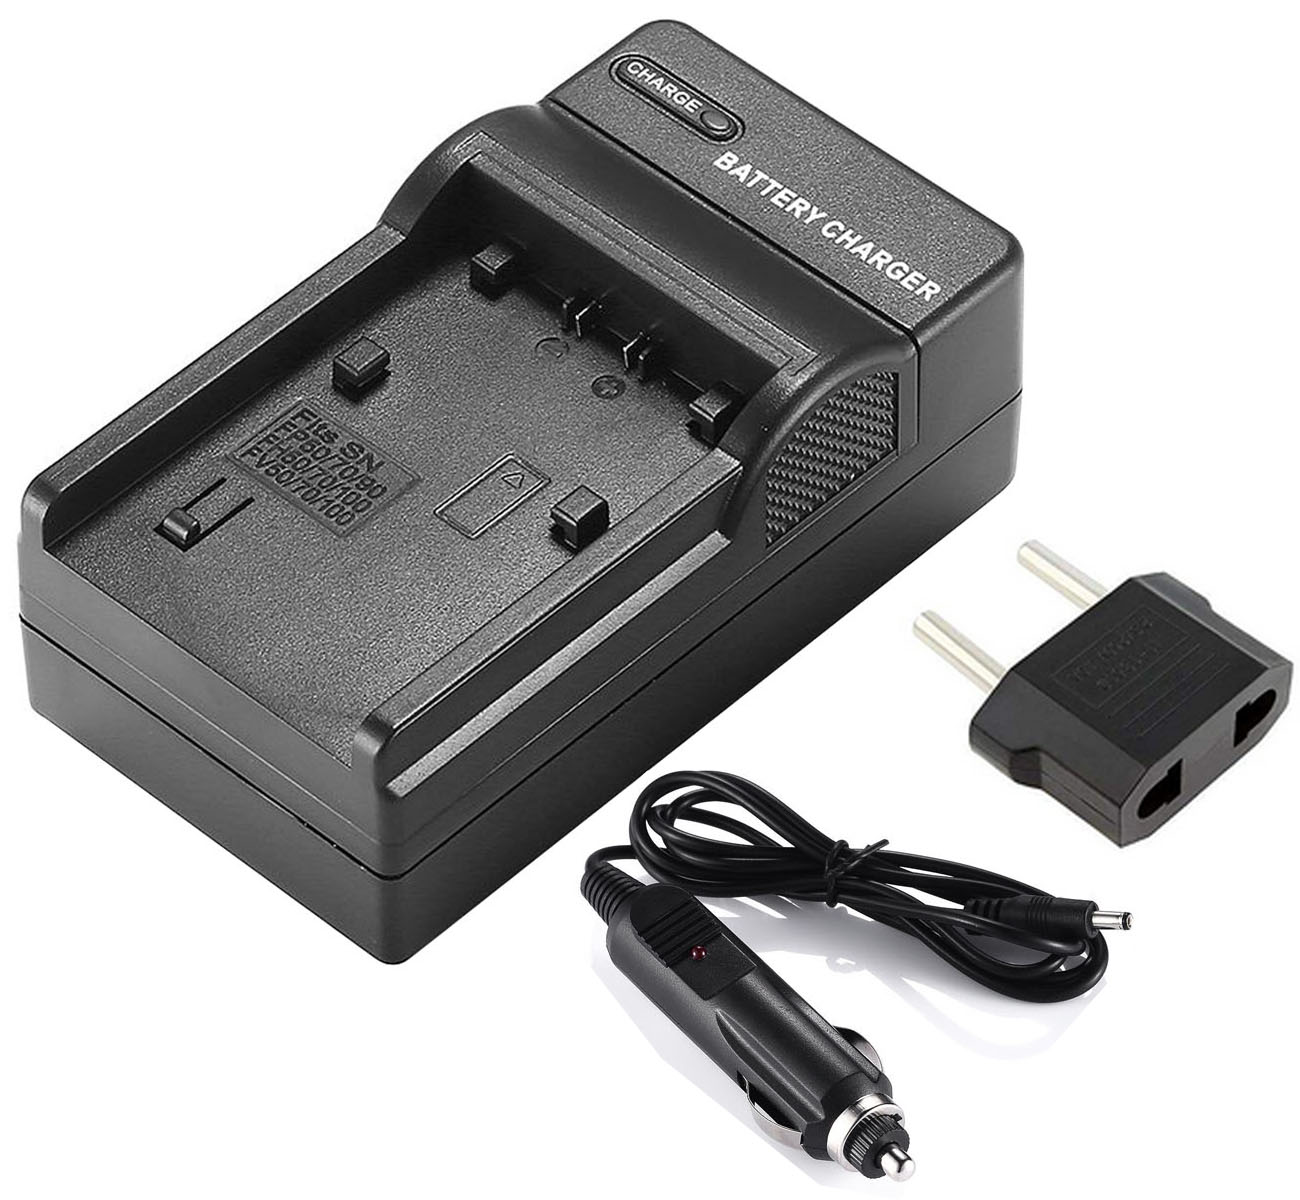 Battery Charger for Panasonic HC-V750 HC-V750M HC-V750K HC-V750MK Full HD Camcorder